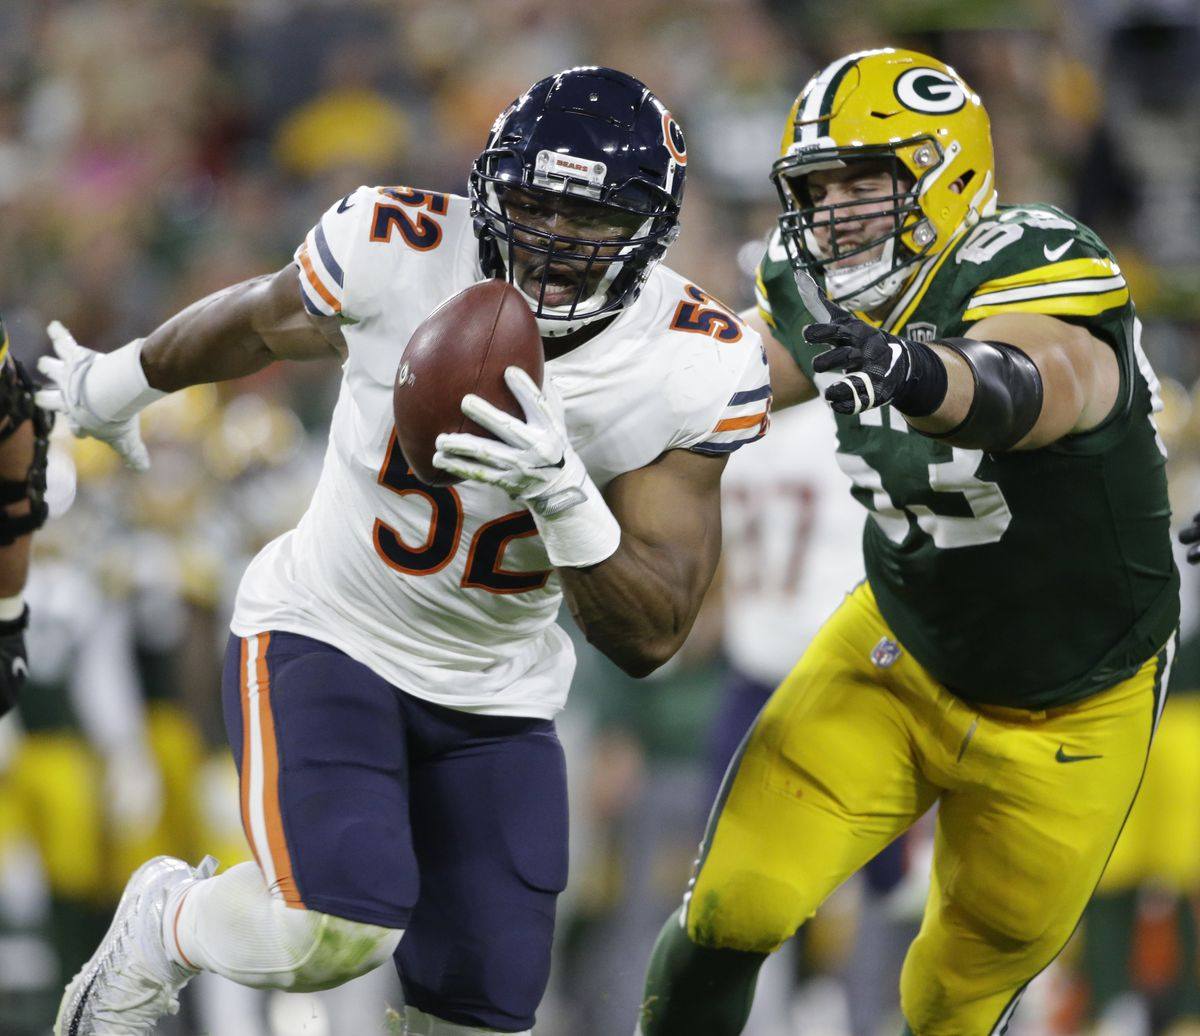 In this Sept. 9, 2018, file photo, Chicago Bears' Khalil Mack intercepts a pass and returns it for a touchdown during the first half of an NFL football game against the Green Bay Packers, in Green Bay, Wis. The Chicago Bears have a chance to tighten their